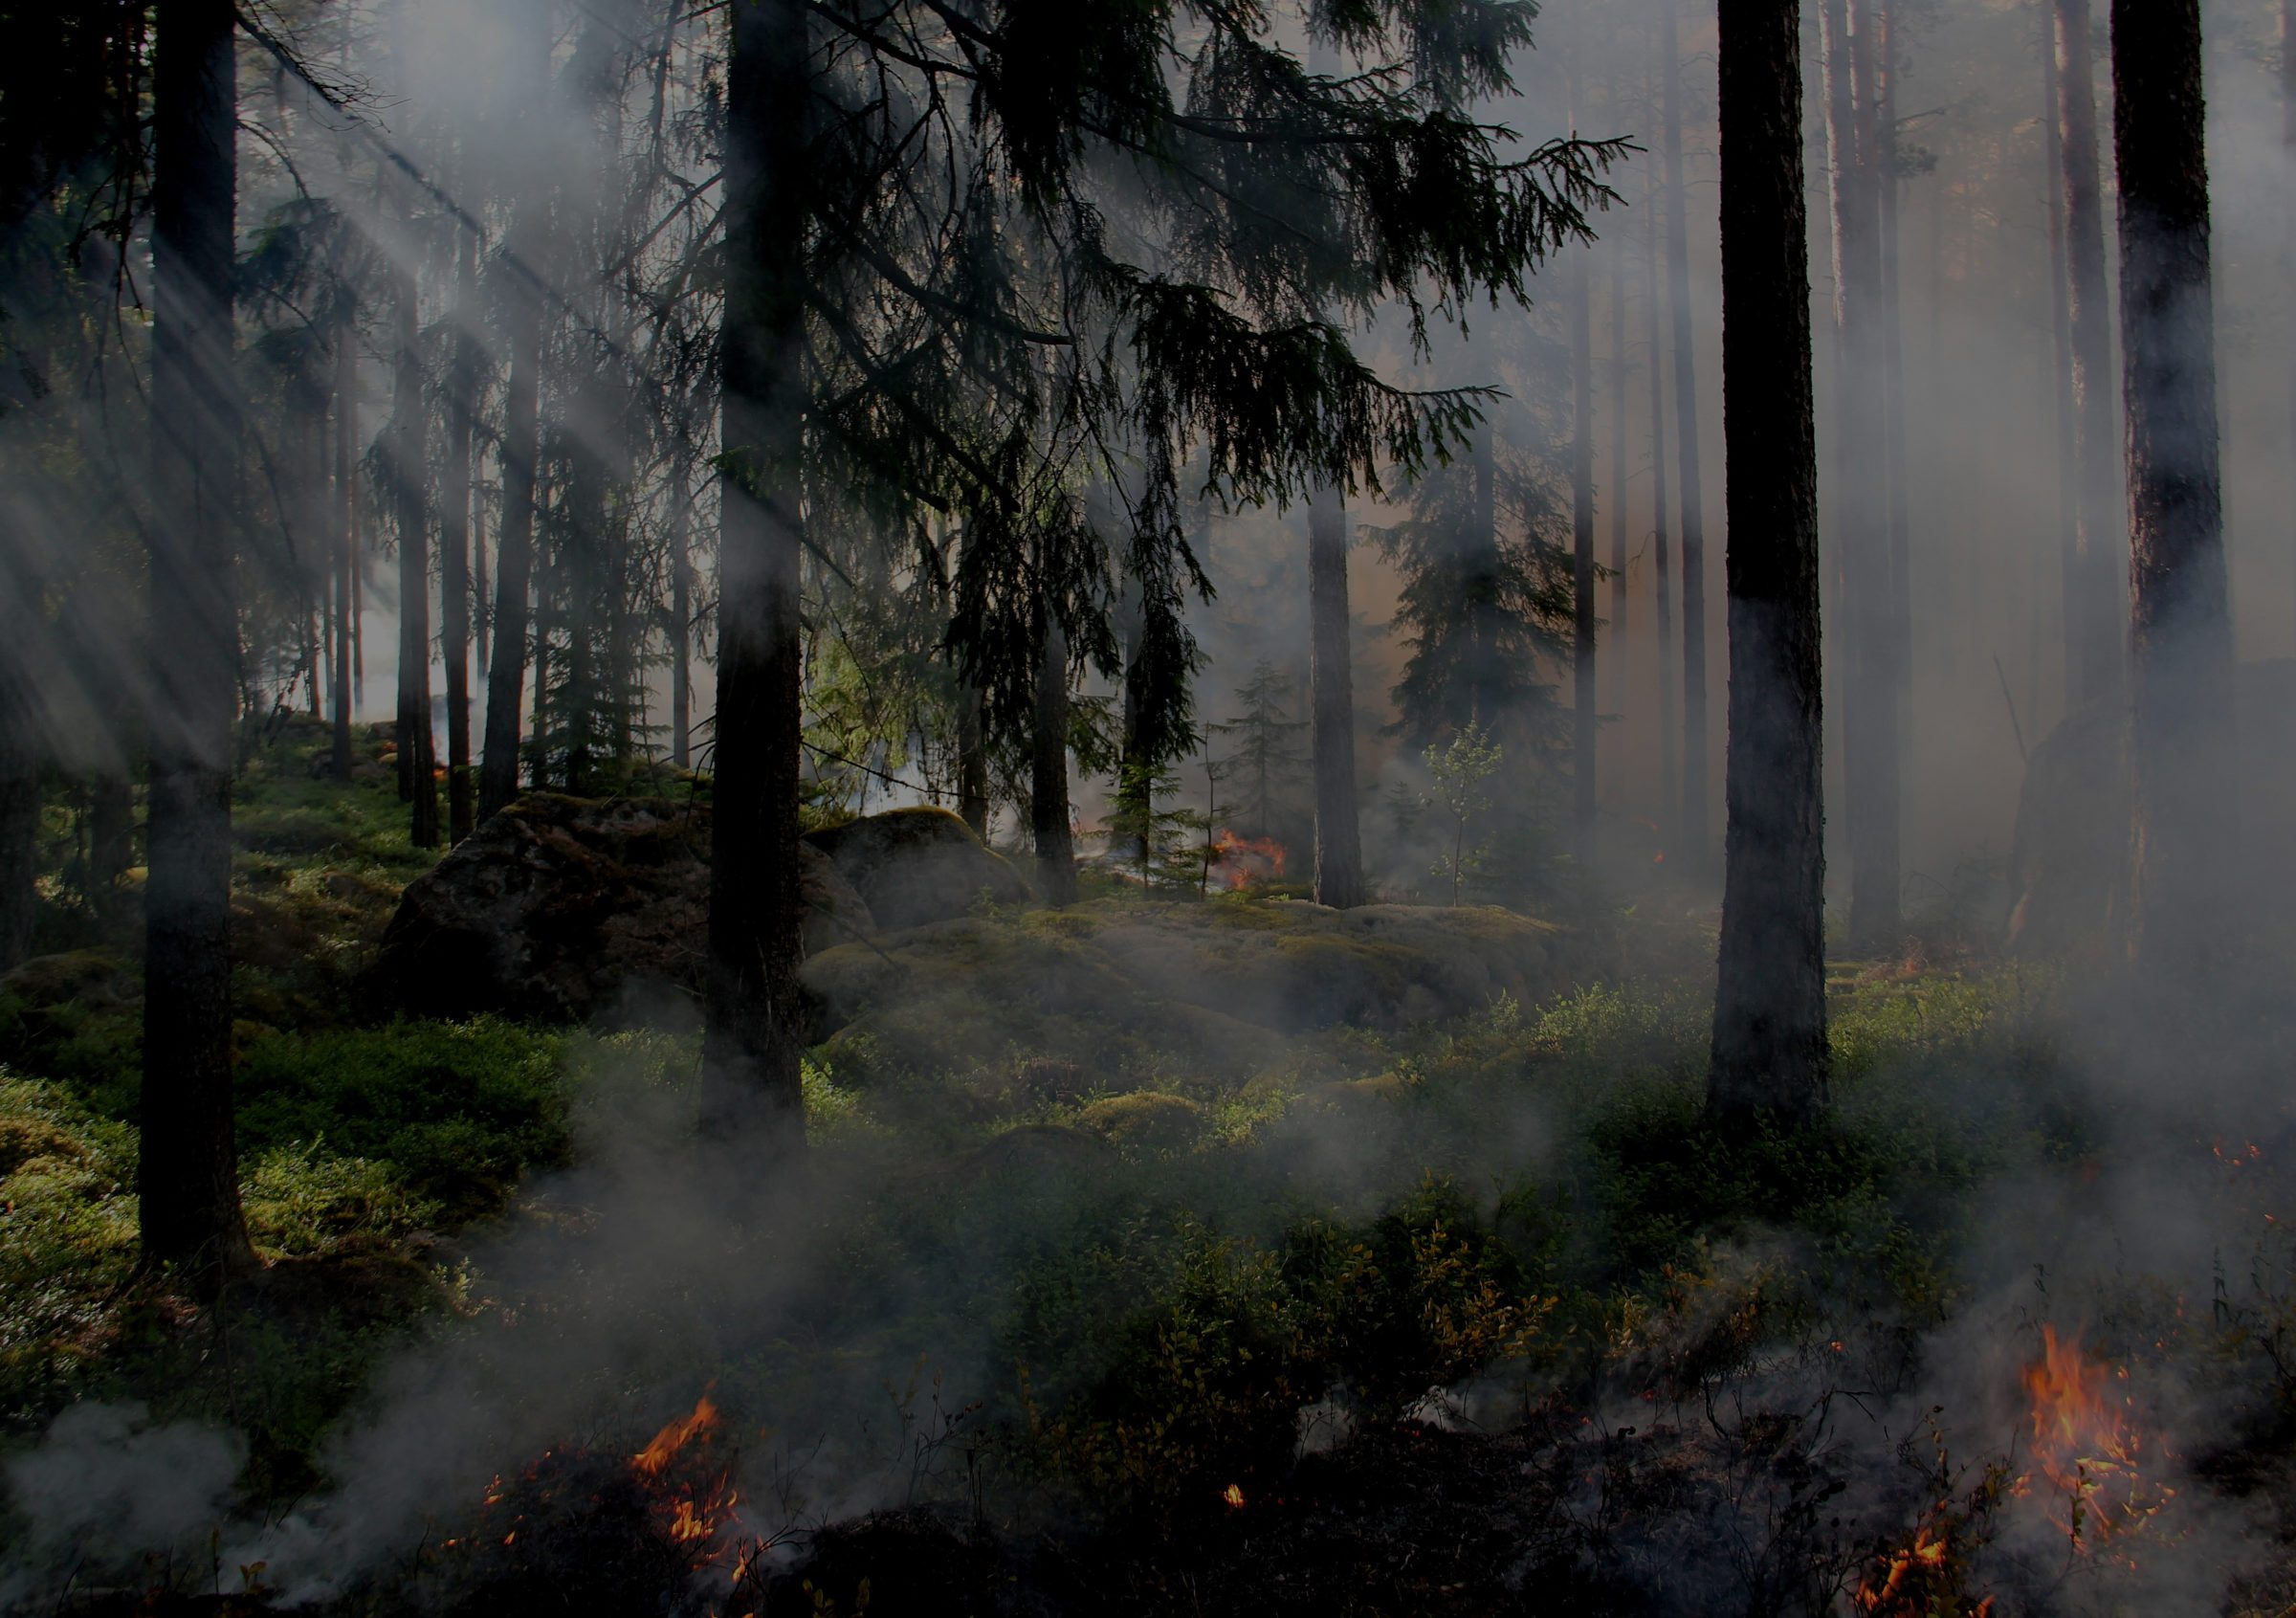 forest fires burning in thick trees